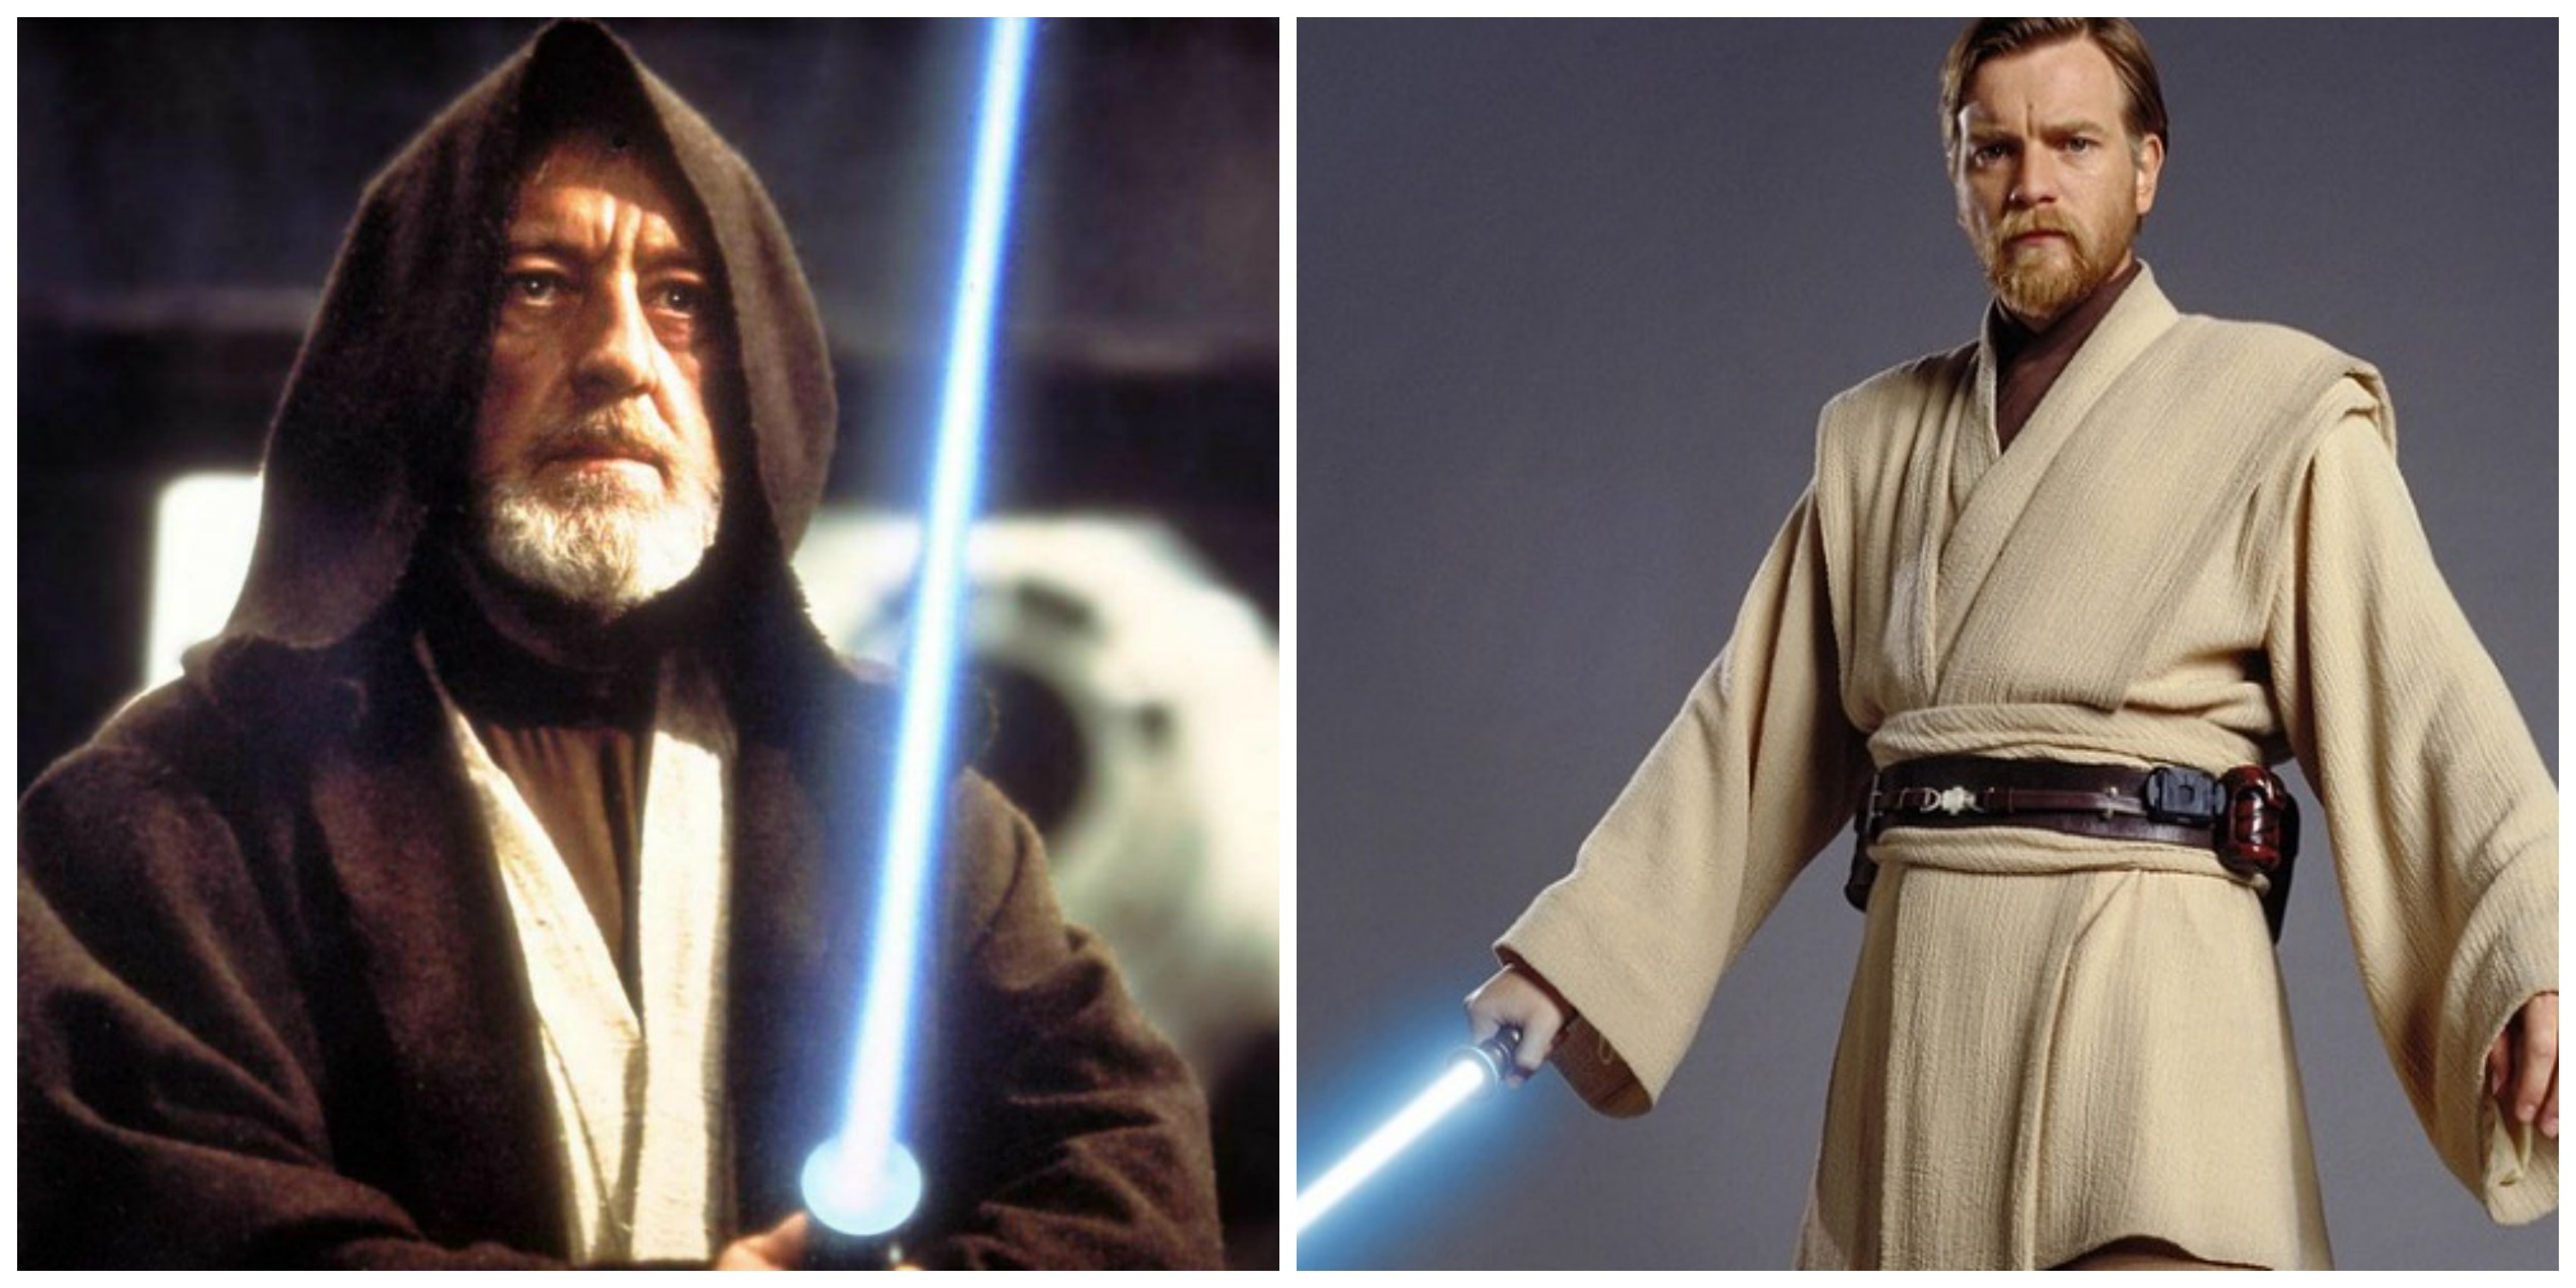 Yes, an Obi-Wan Star Wars movie is finally in development